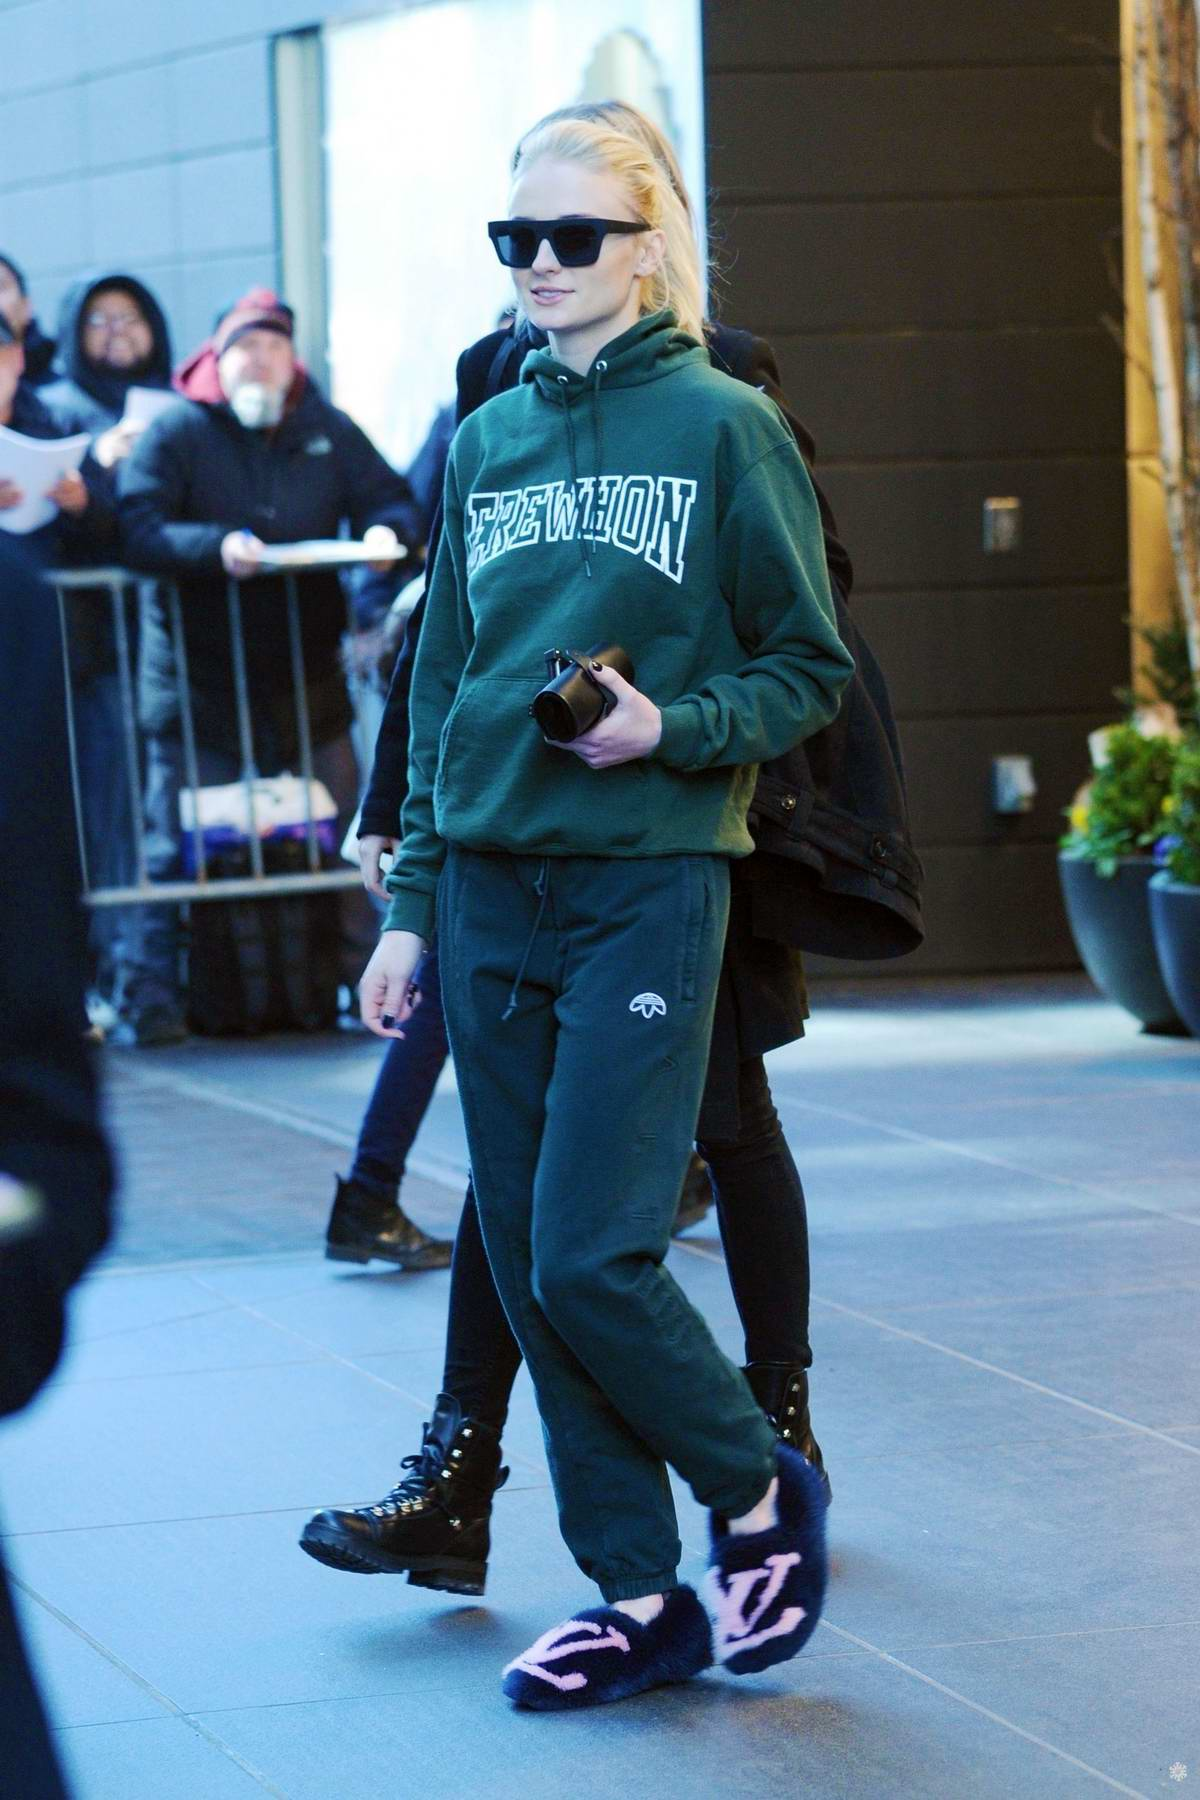 Sophie Turner steps out in green sweats and Louis Vuitton slippers in New York City